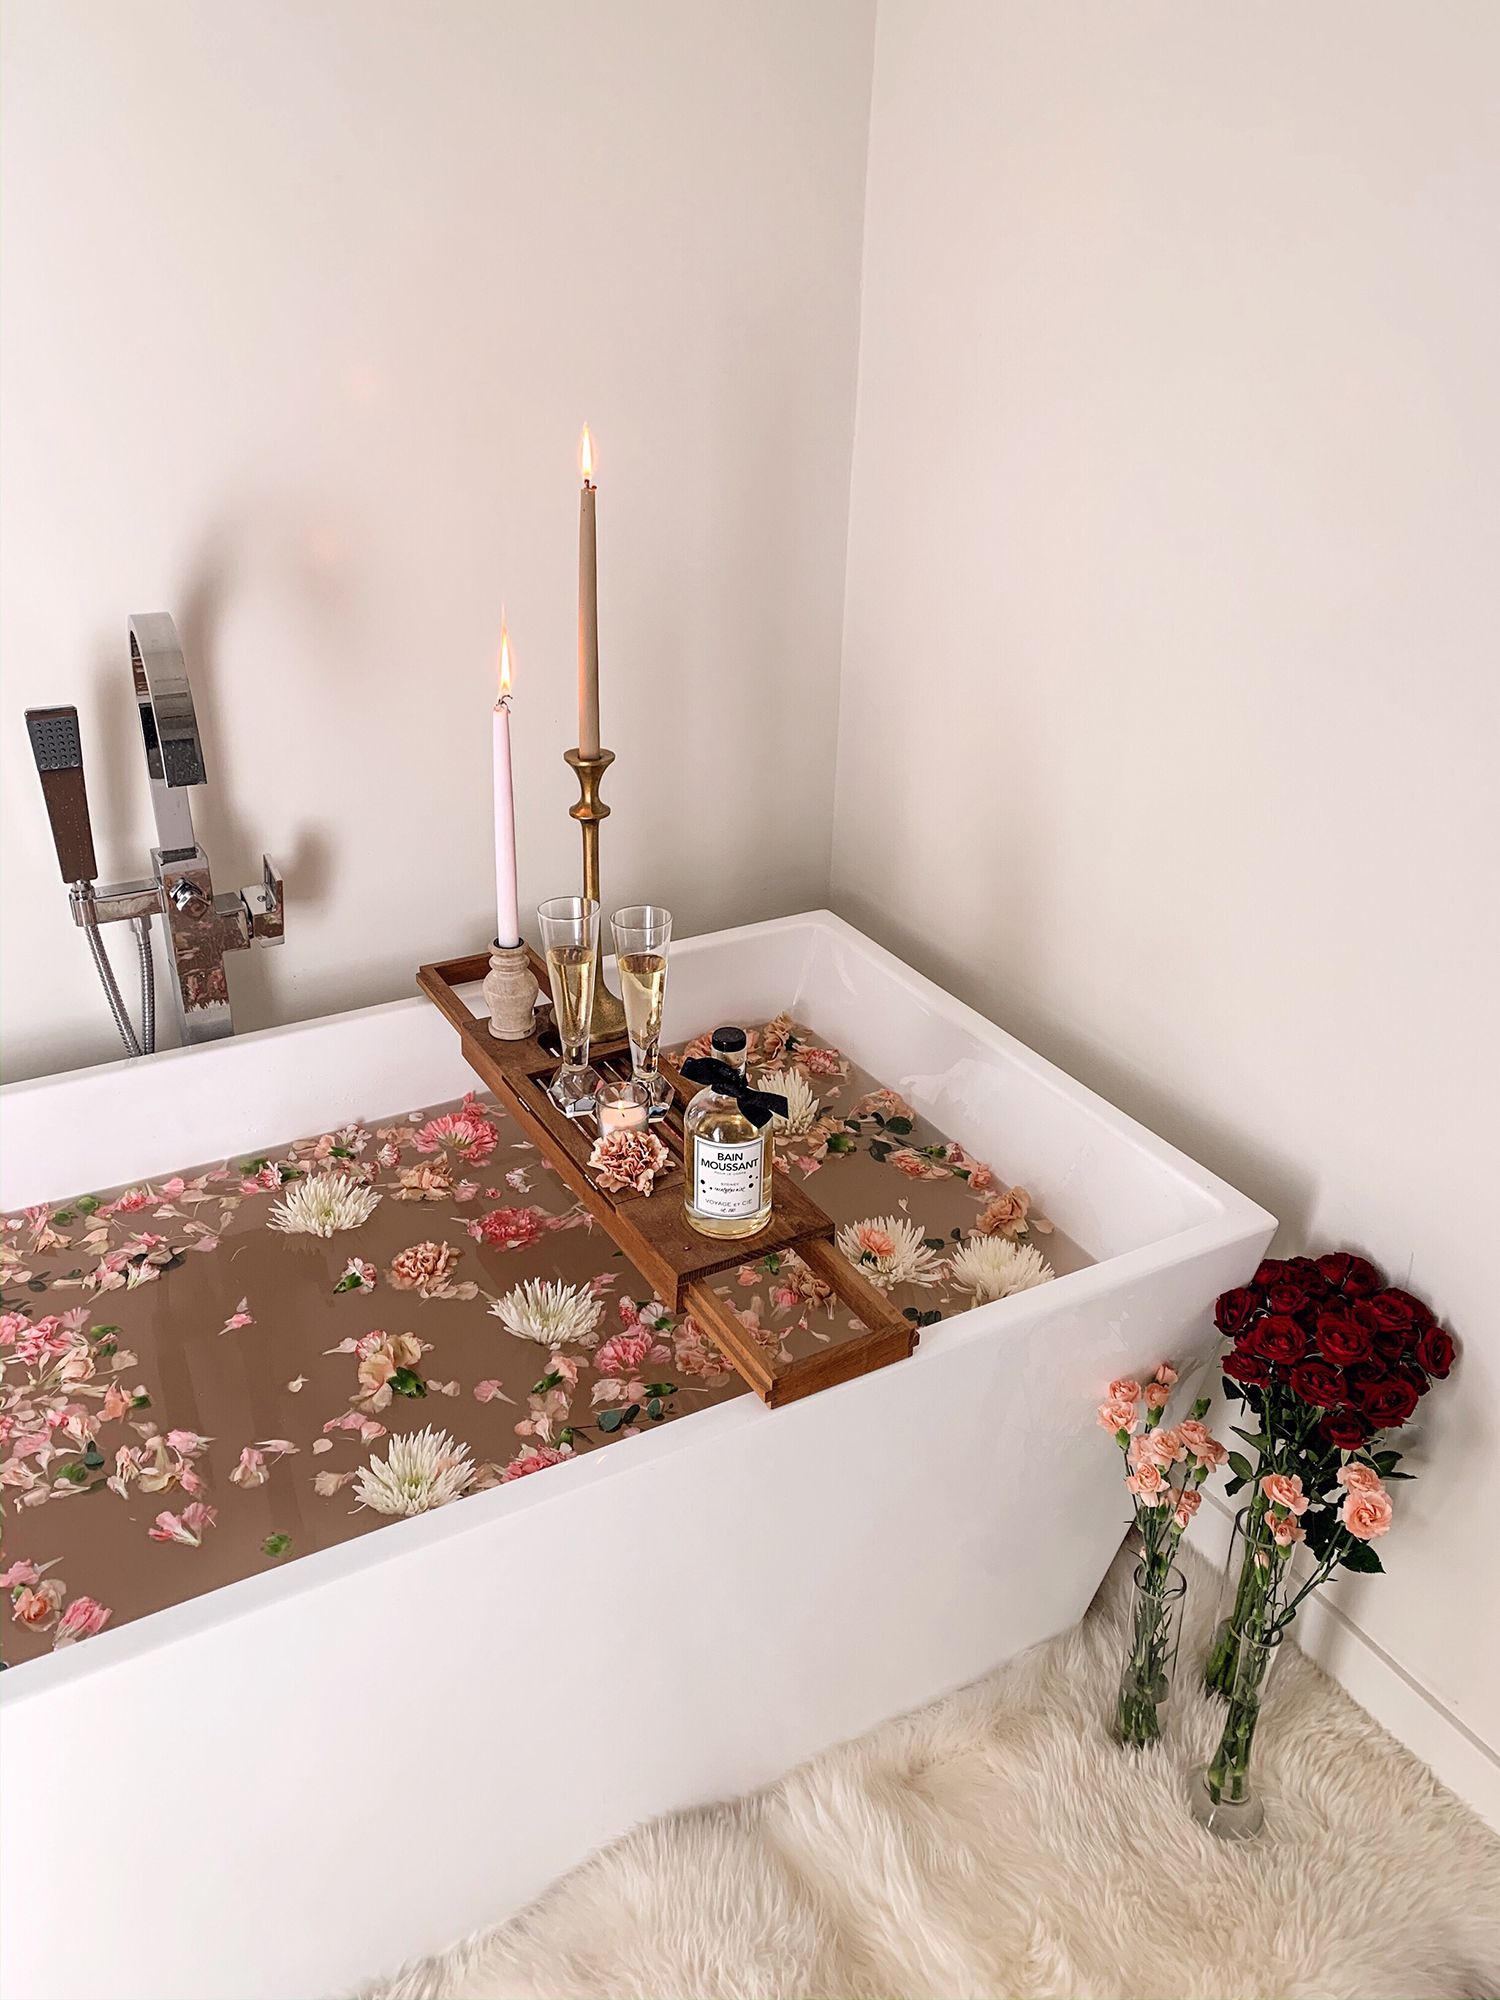 Athome date ideas for valentines day jessi malay in